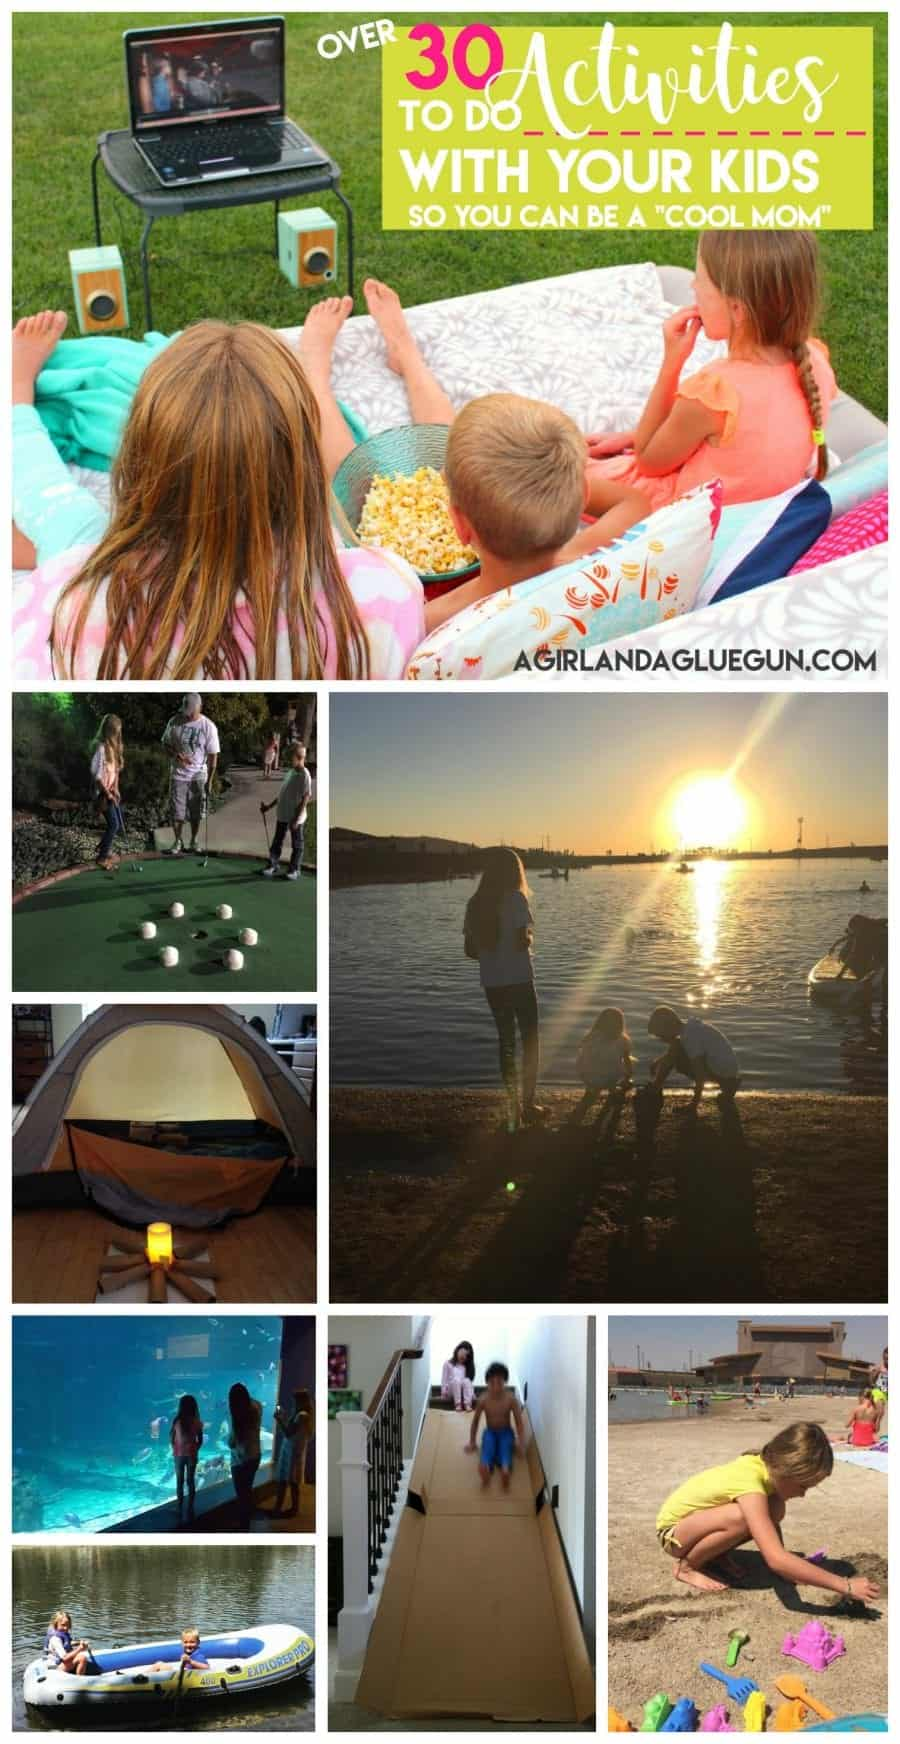 over-30-activities-to-do-with-your-kids-that-will-make-you-a-cool-mom